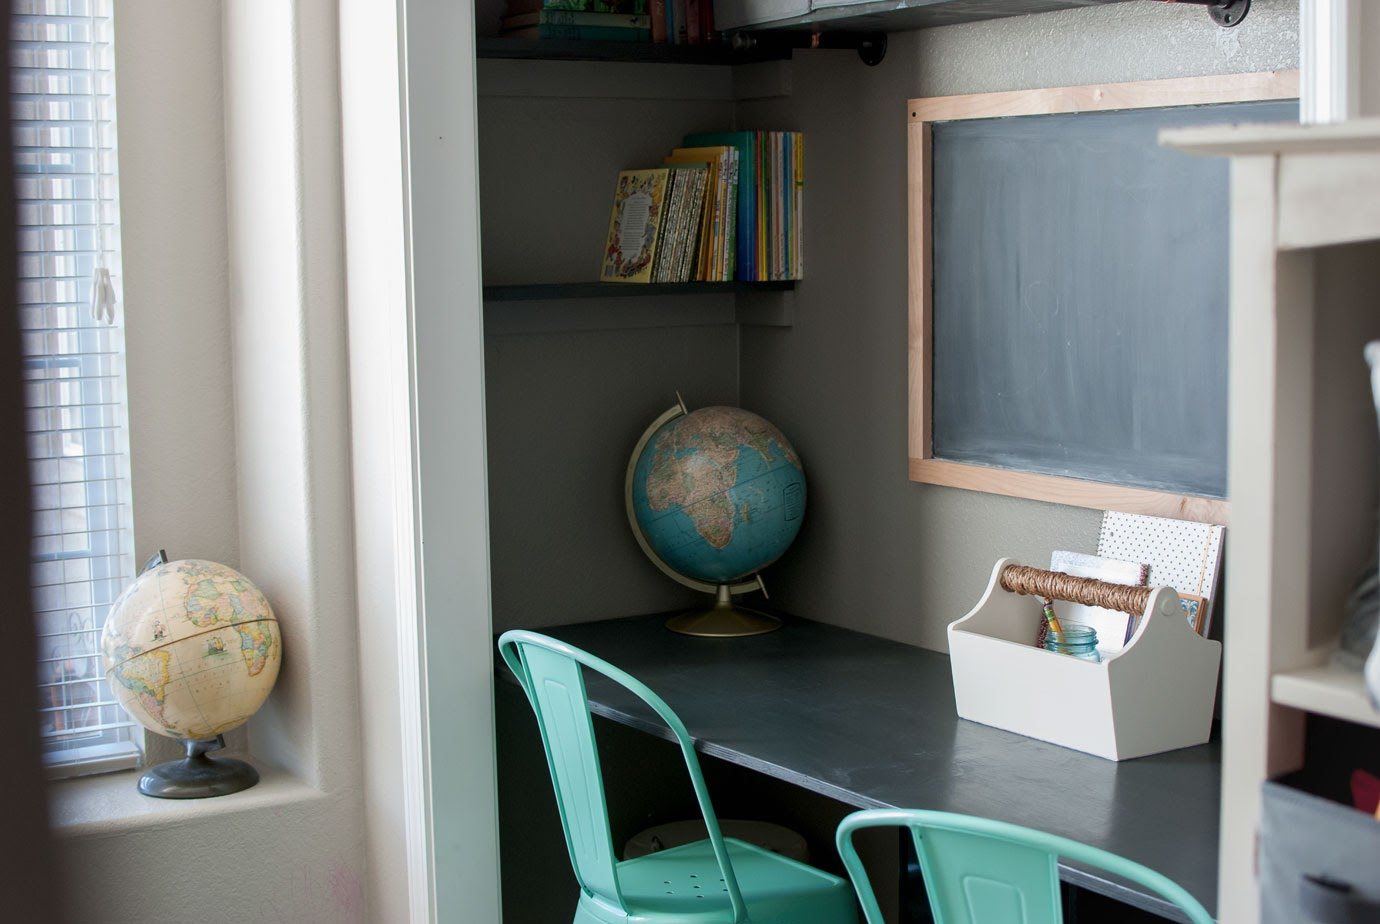 DIY Gray Closet Desk with Built In Shelves Aqua Farmhouse Style Chairs Chalkboard and Vintage Globes